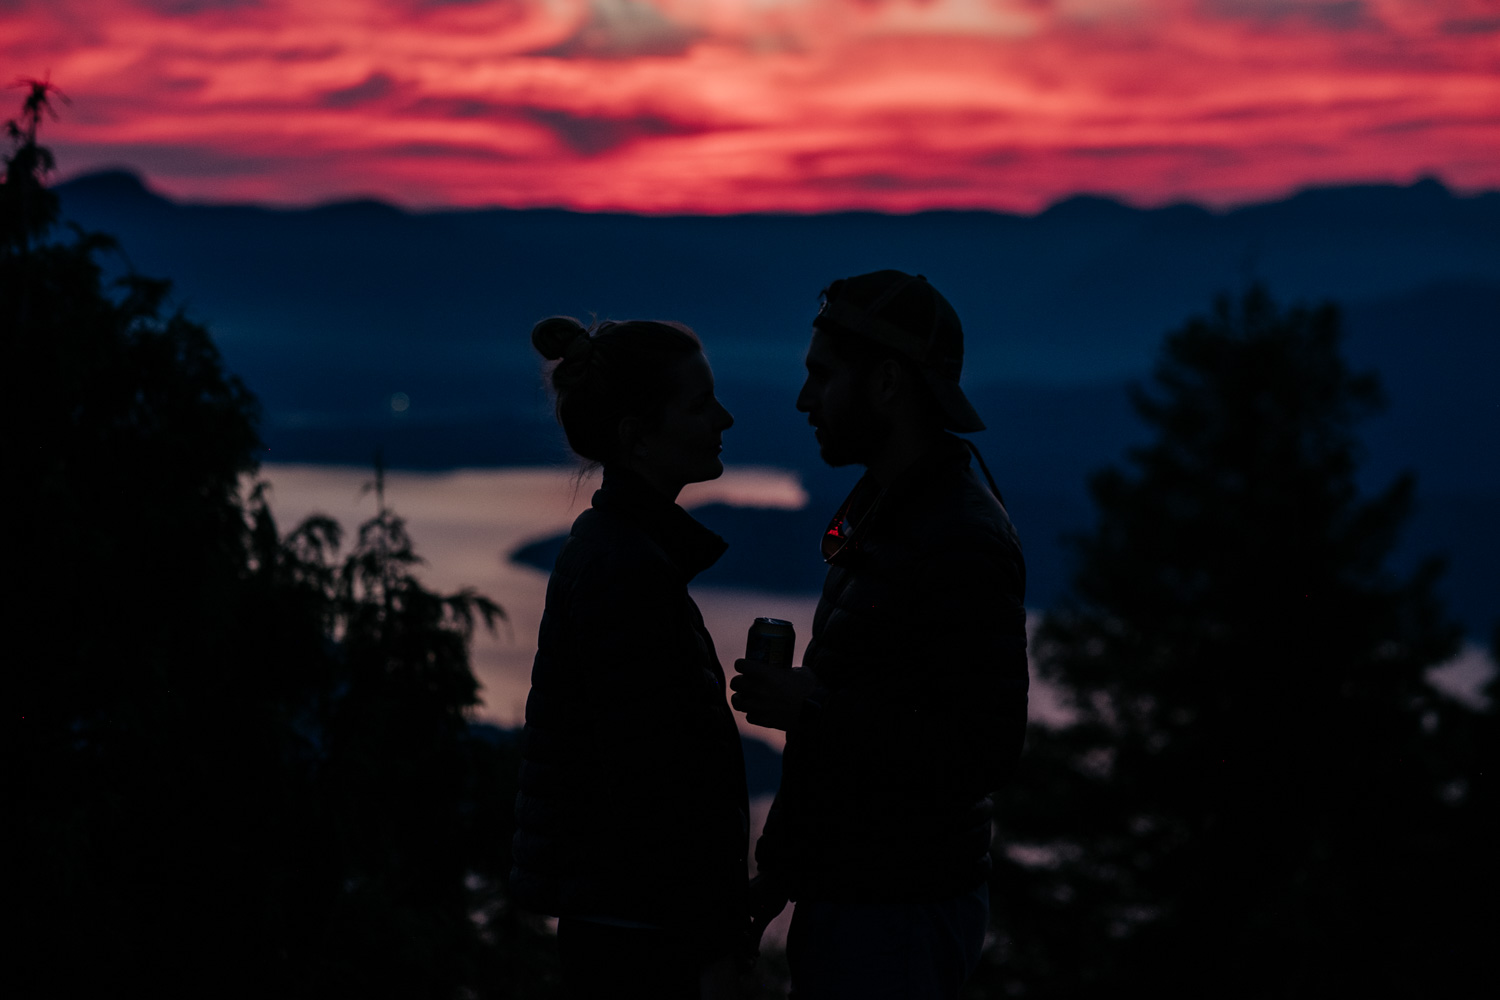 Sunset at Eagle's Point, a hike close to Vancouver, aspontaneous camping trip with friends. We arrived just in time to crack a cold one and watch the most insane sunset over Vancouver and the surrounding islands.